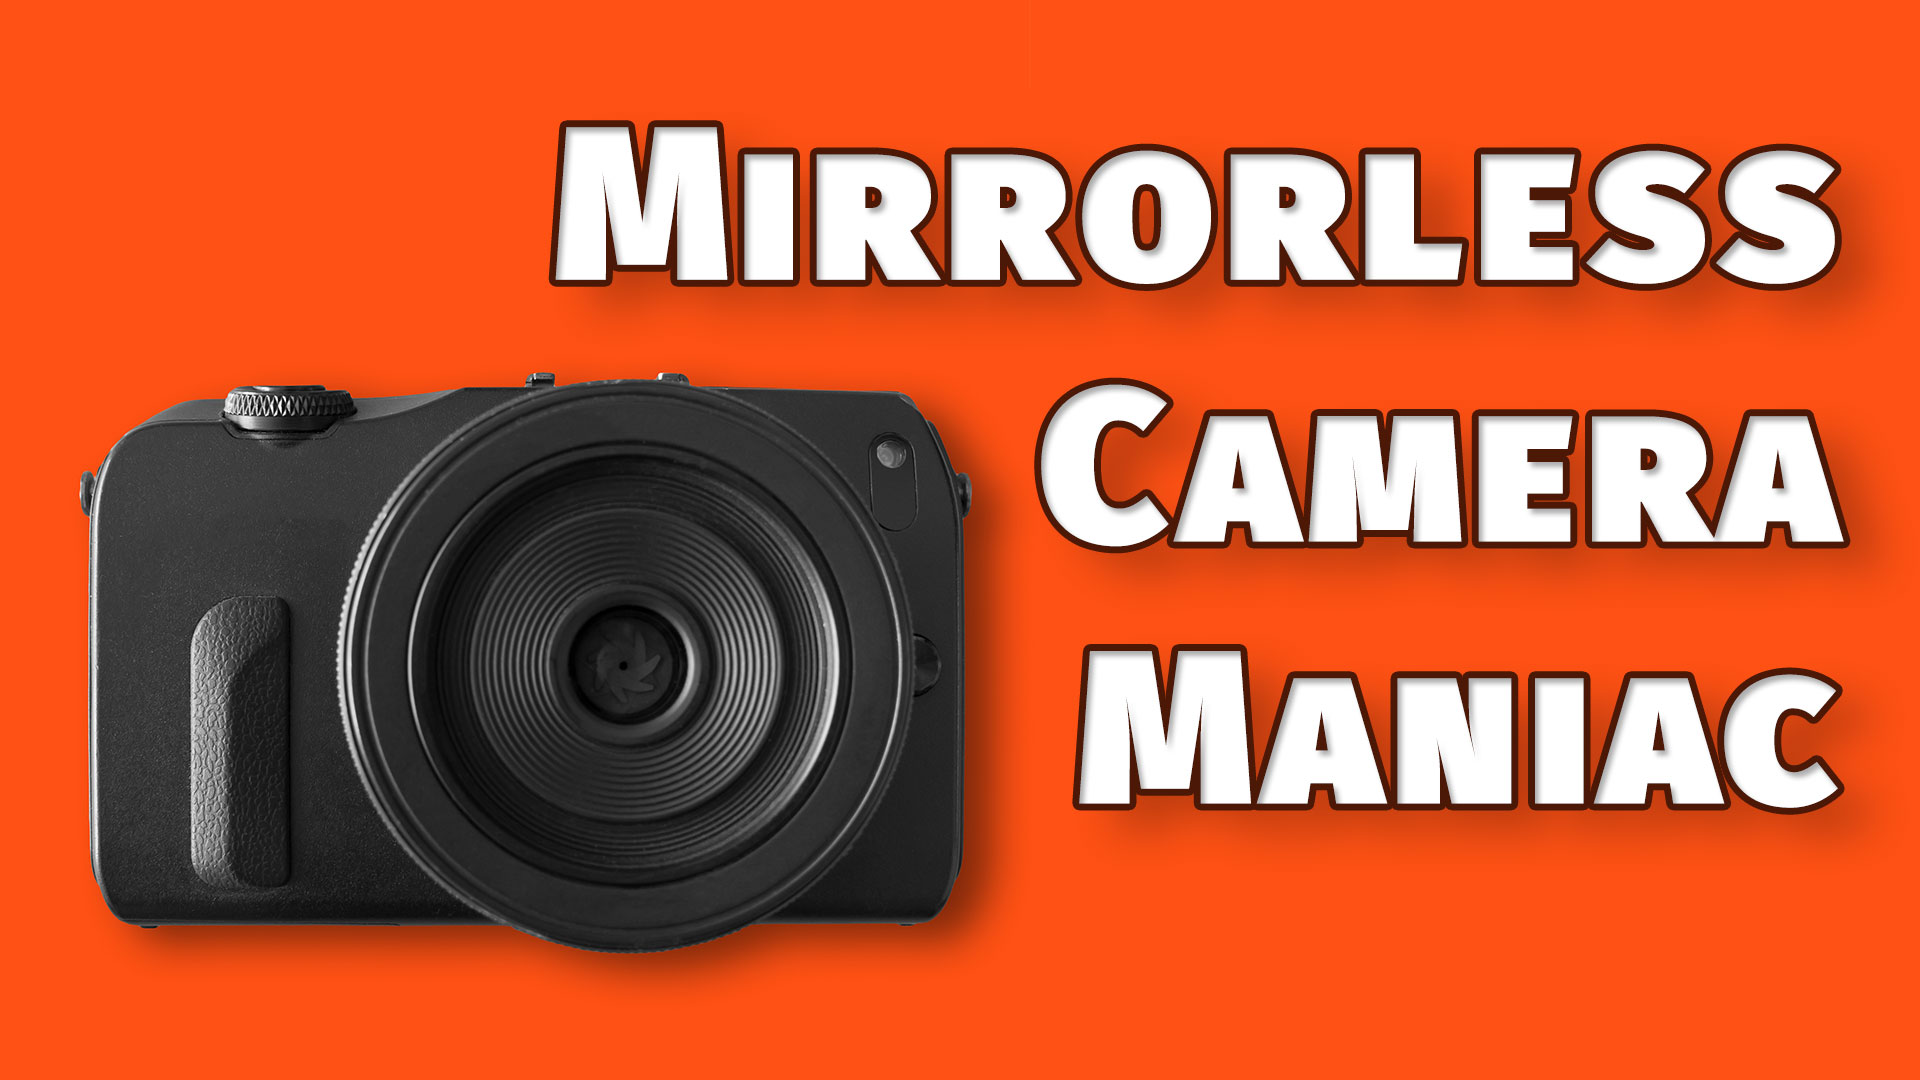 Mirrorless Camera Maniac: How To Tether Wirelessly With